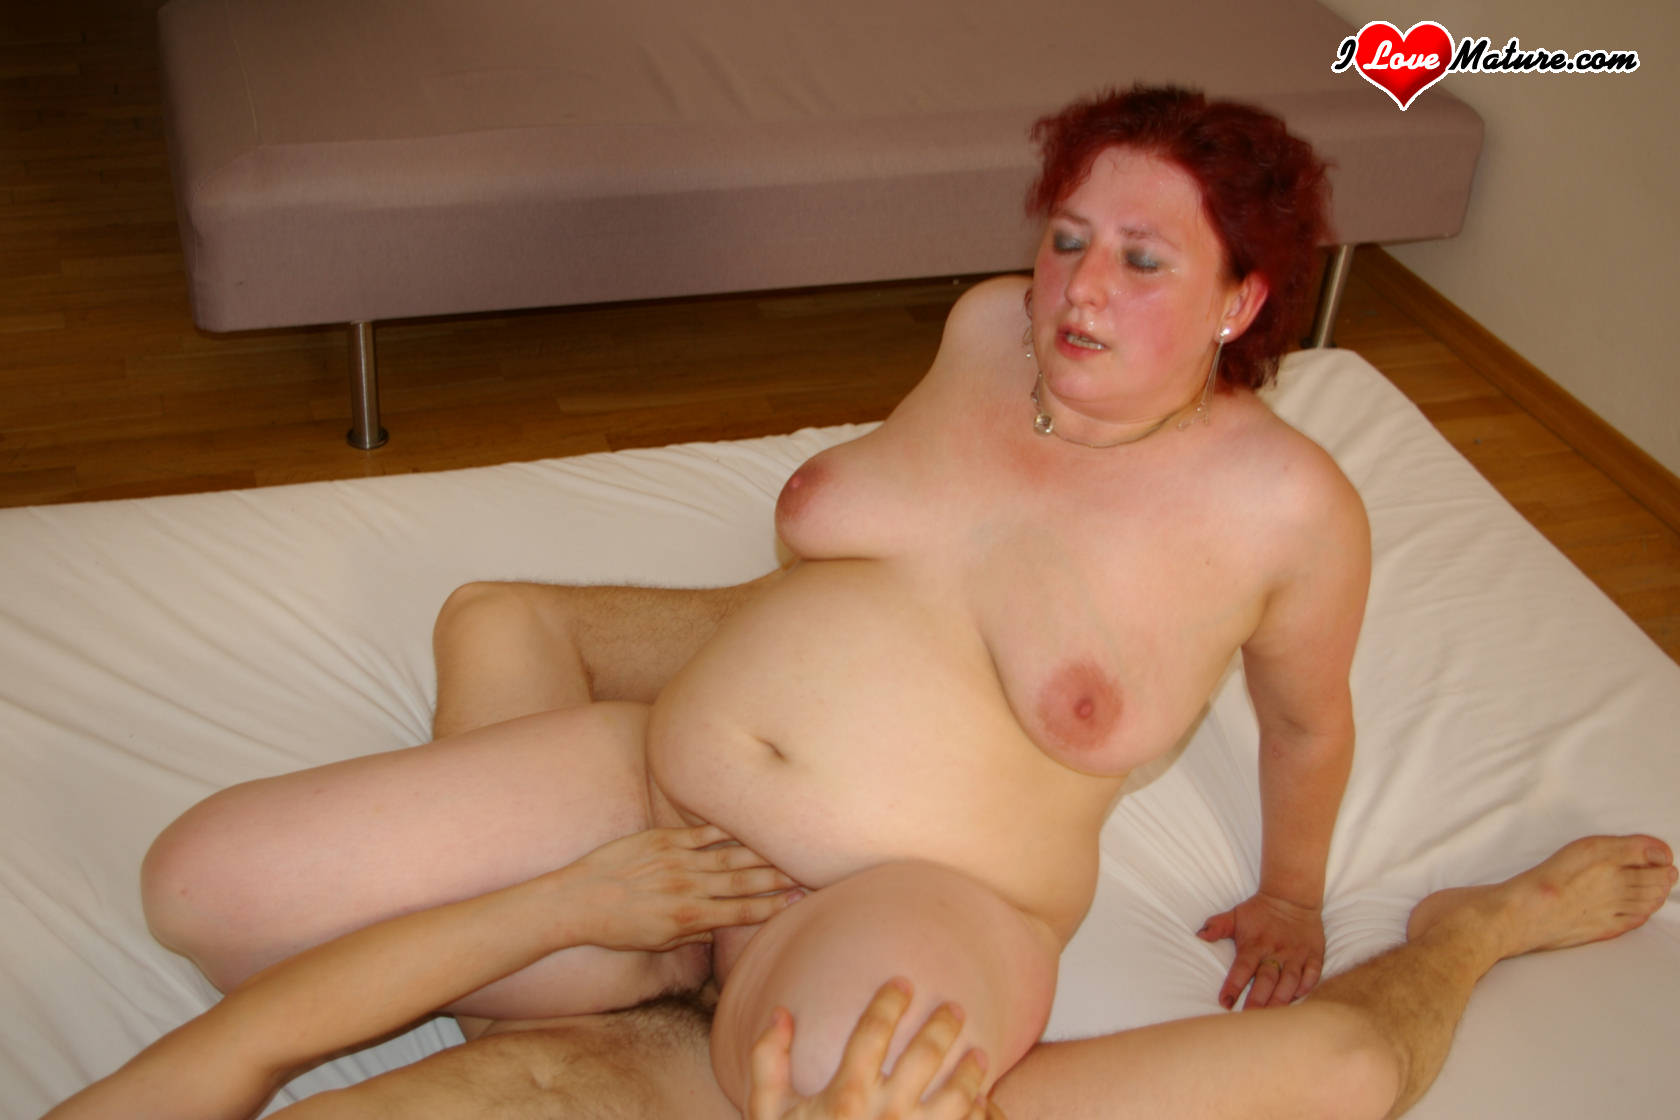 bobbi star threesome after carwash